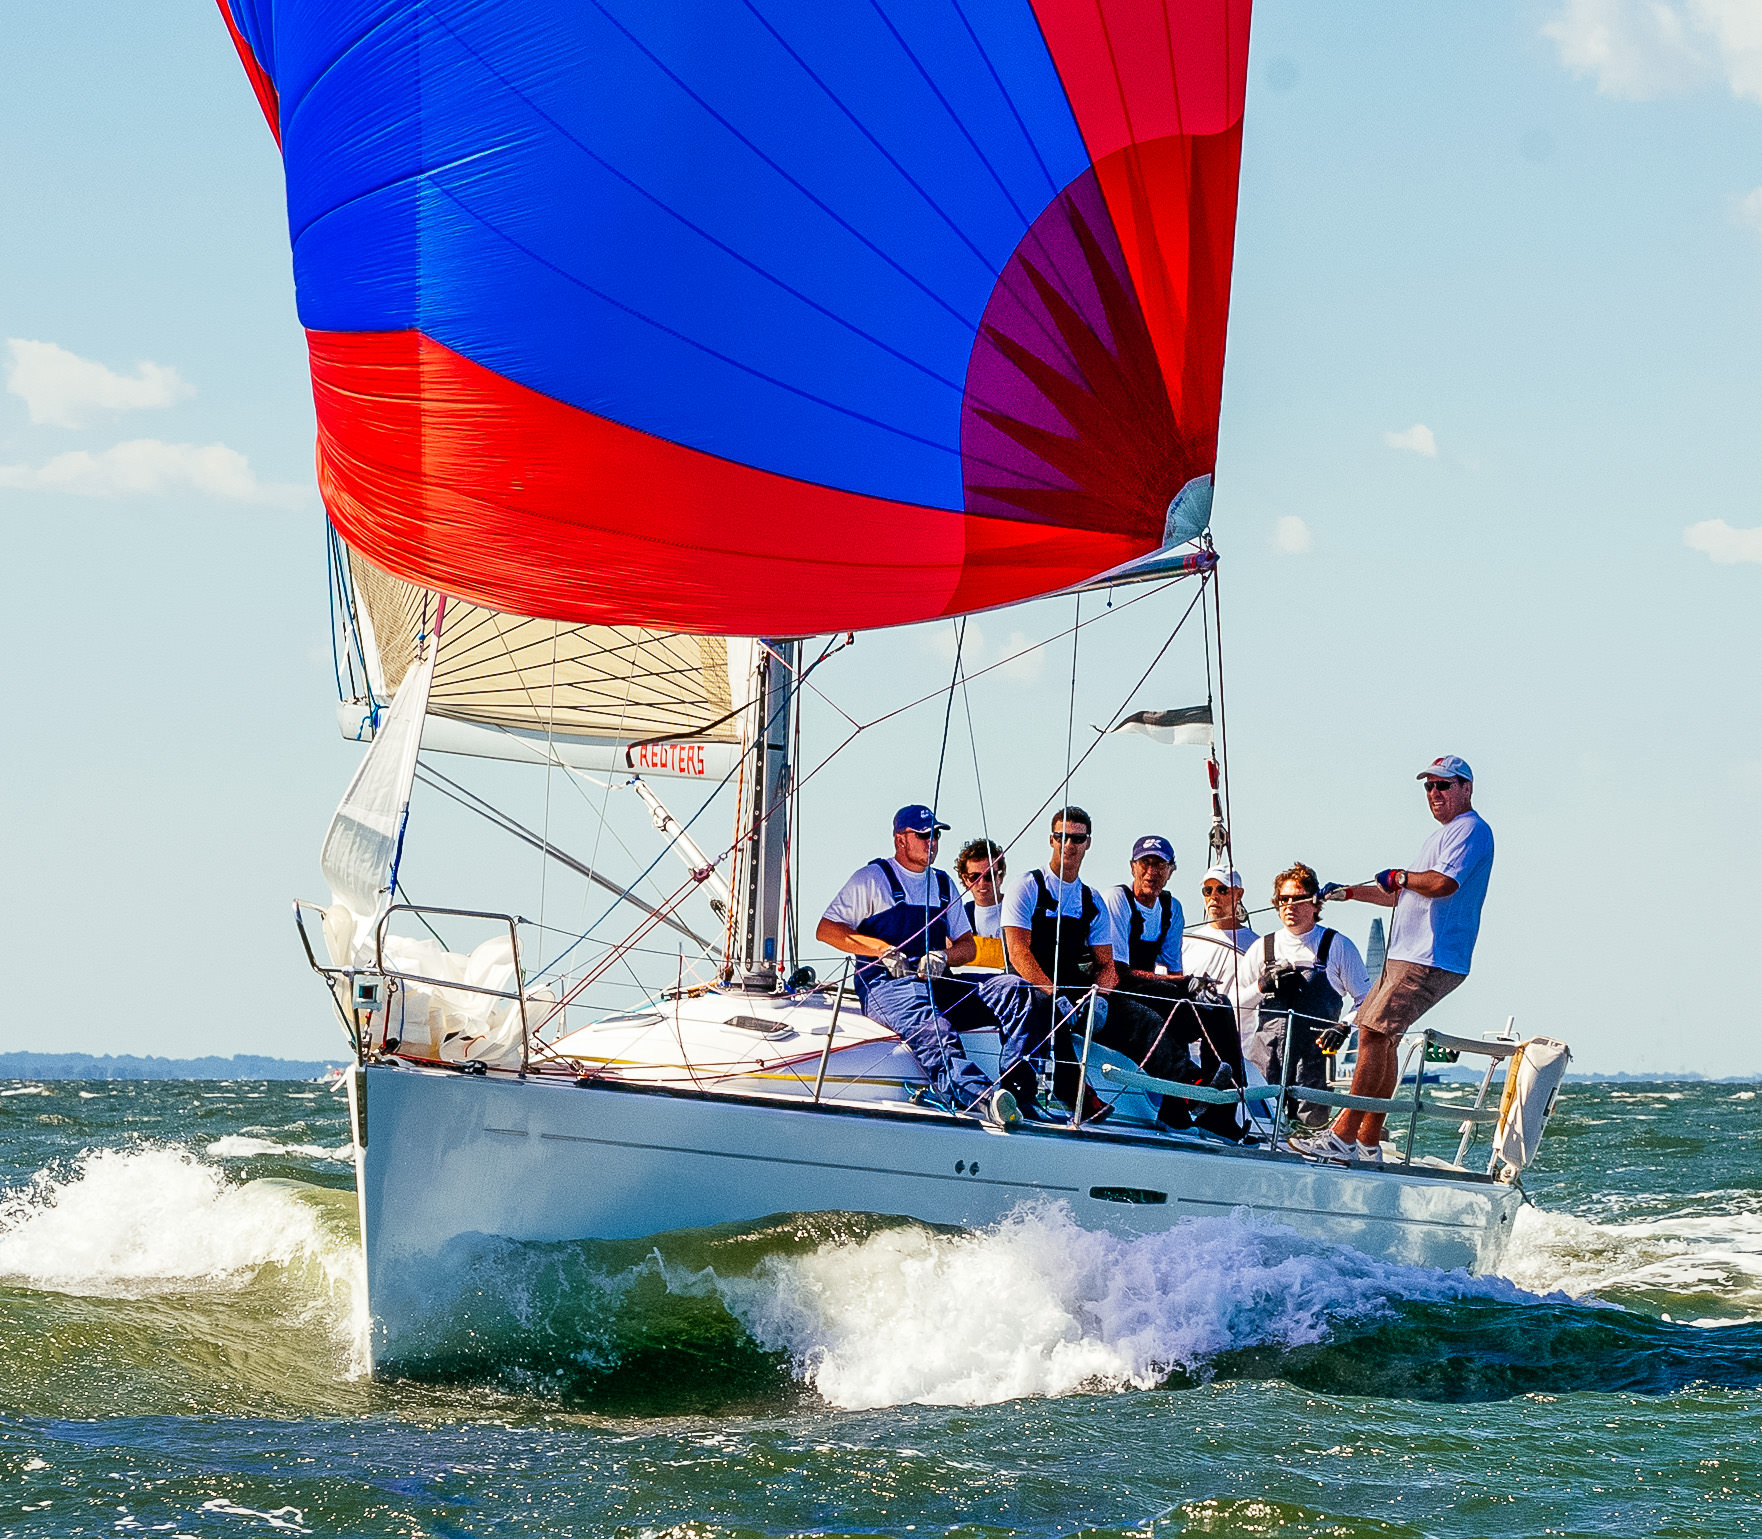 A Beneteau First 36.7 blasting downwind with an S4.